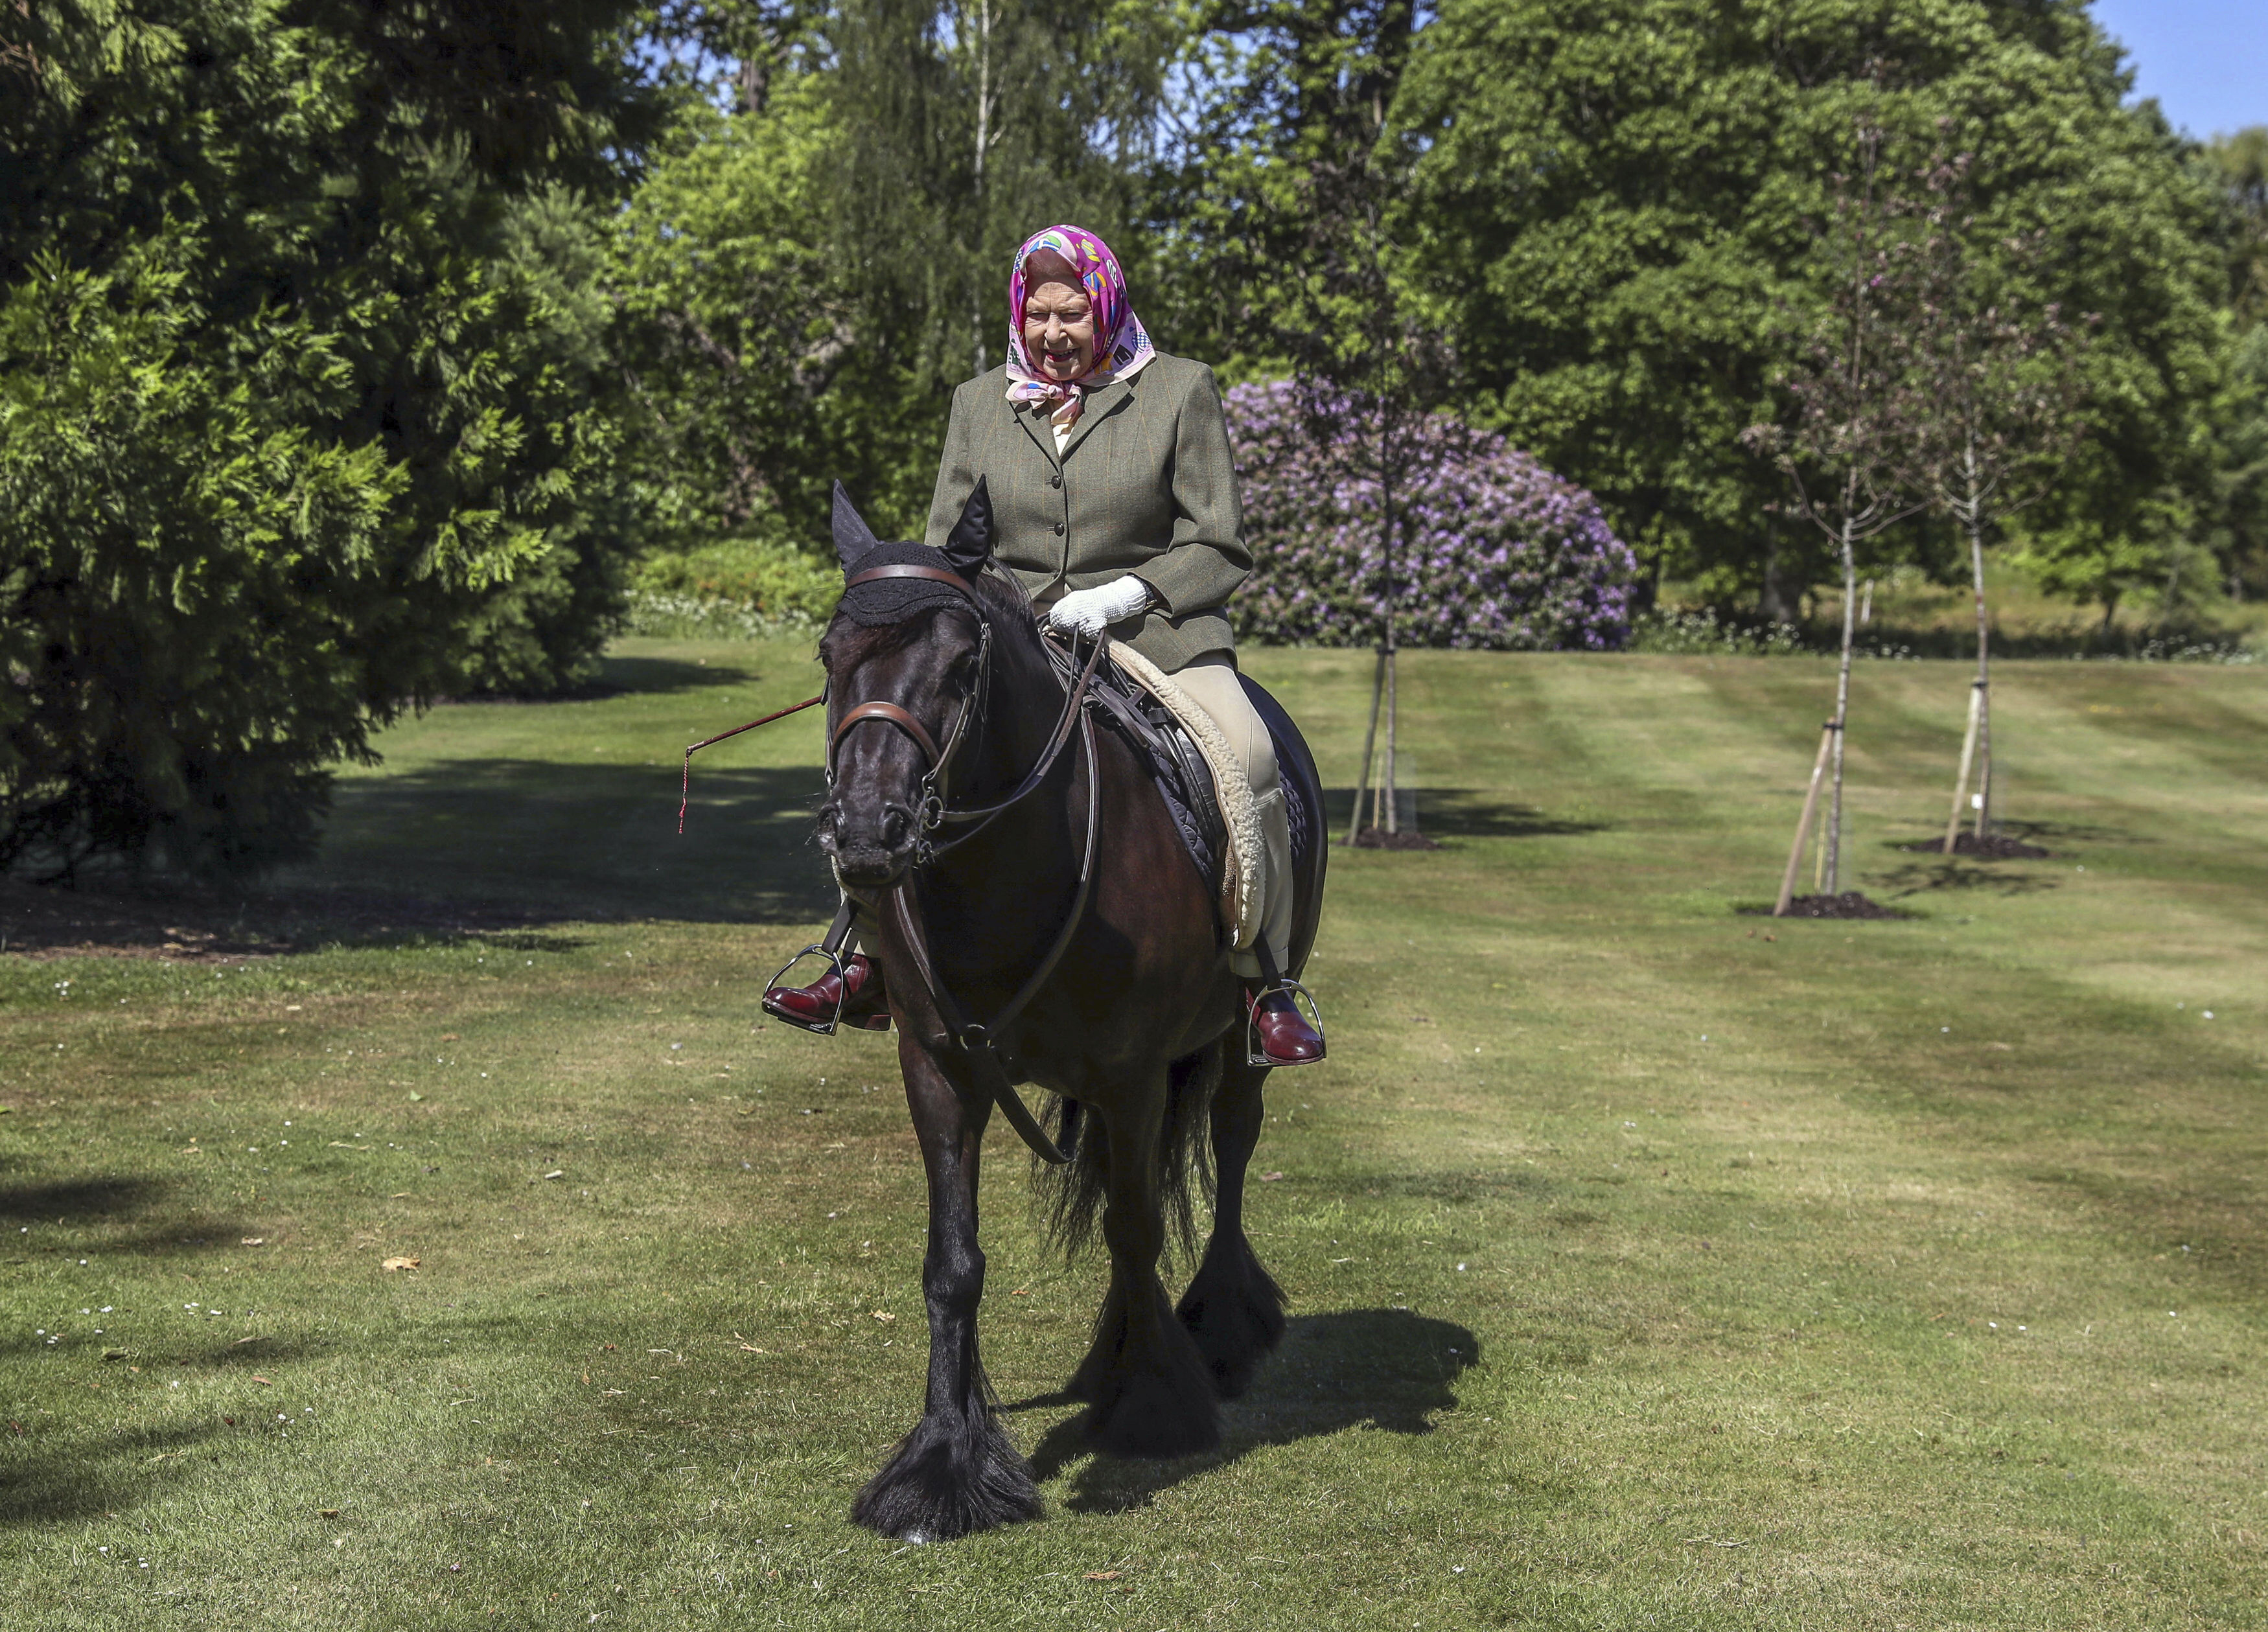 Queen Elizabeth II rides Balmoral Fern, a 14-year-old Fell pony, in Windsor Home Park, Britain, on Sunday.